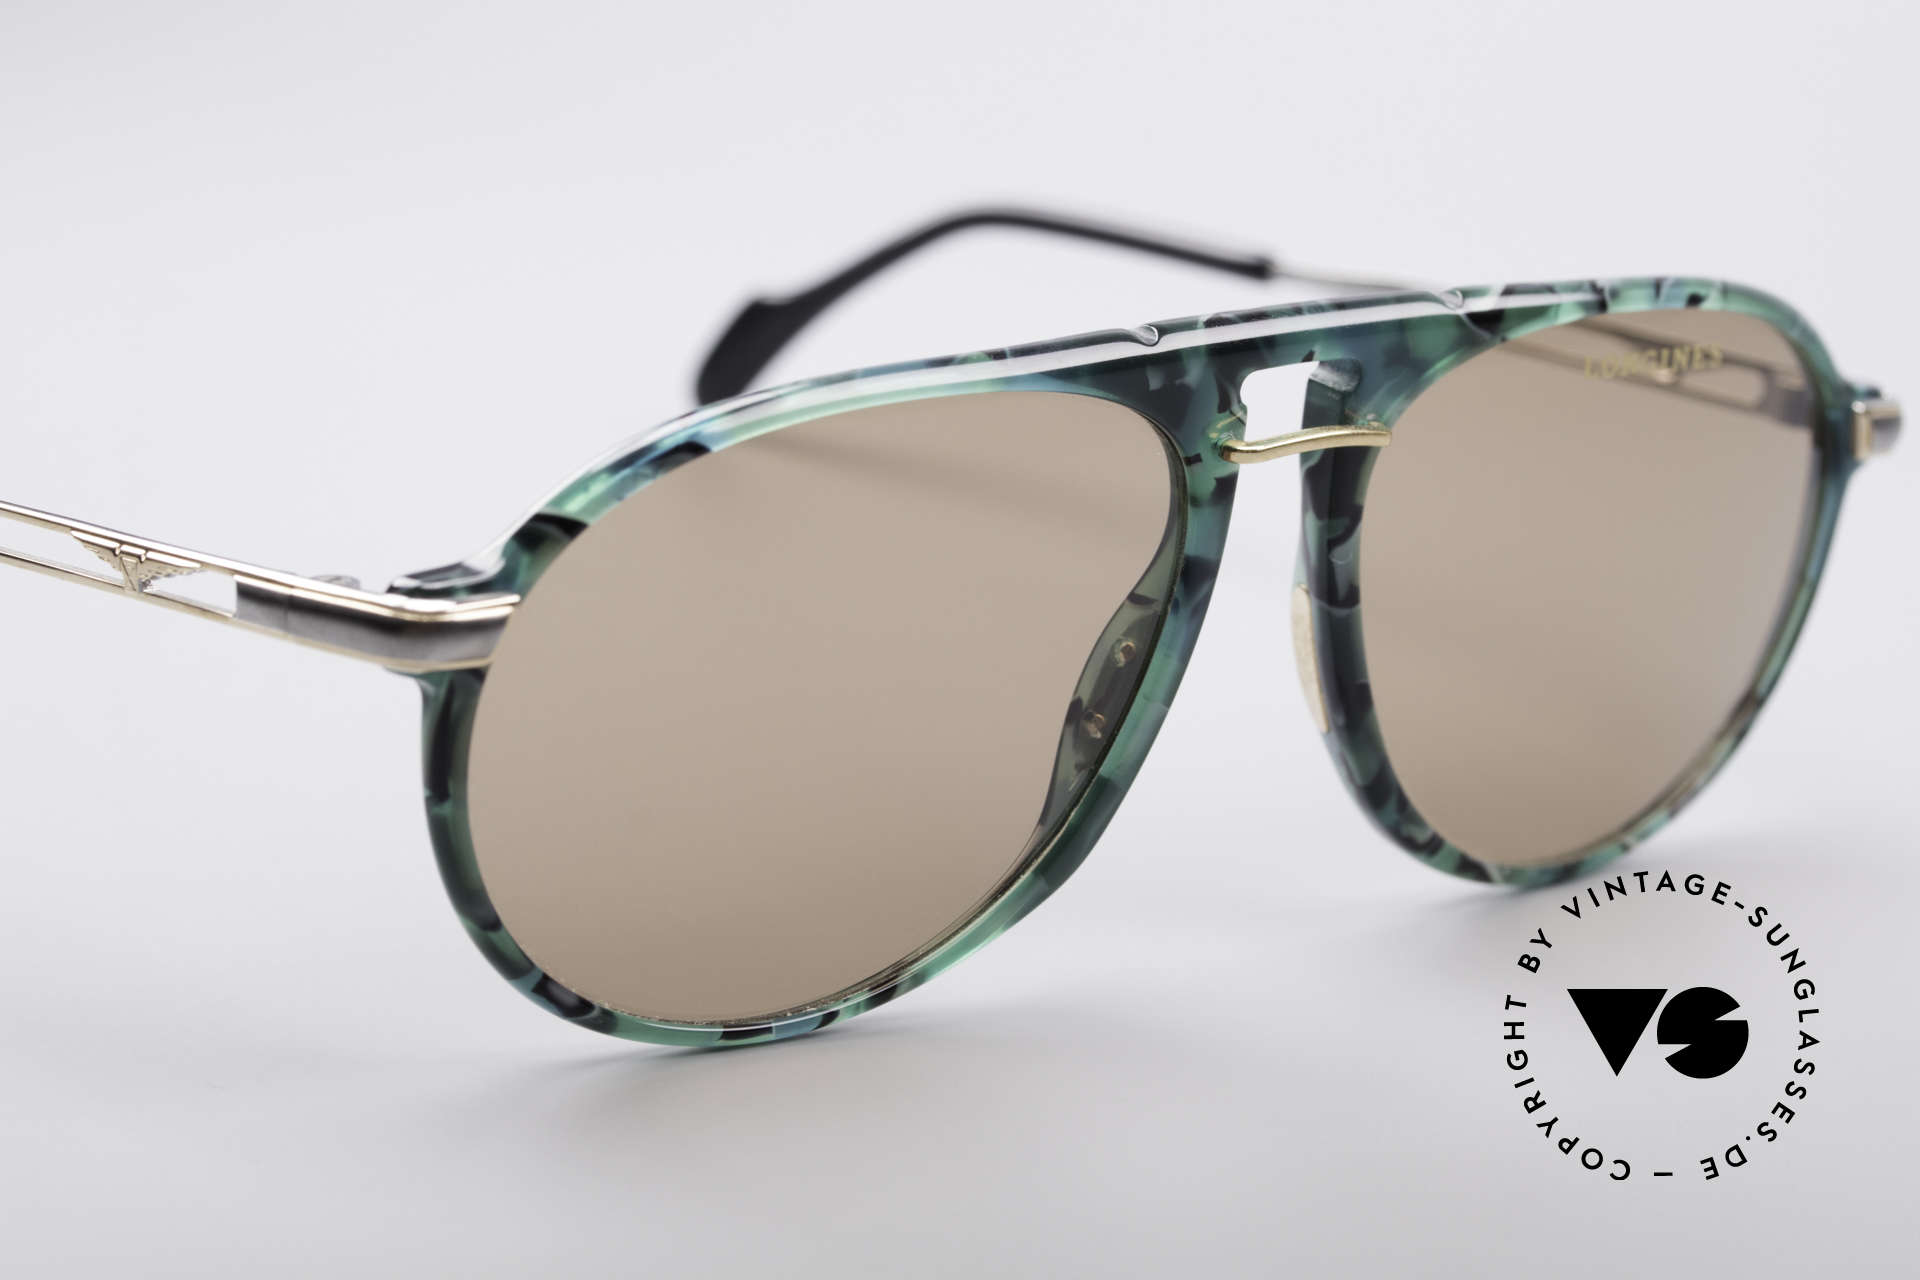 Longines 4200 Zeiss Mineral Lenses, never worn (like all our premium vintage shades), Made for Men